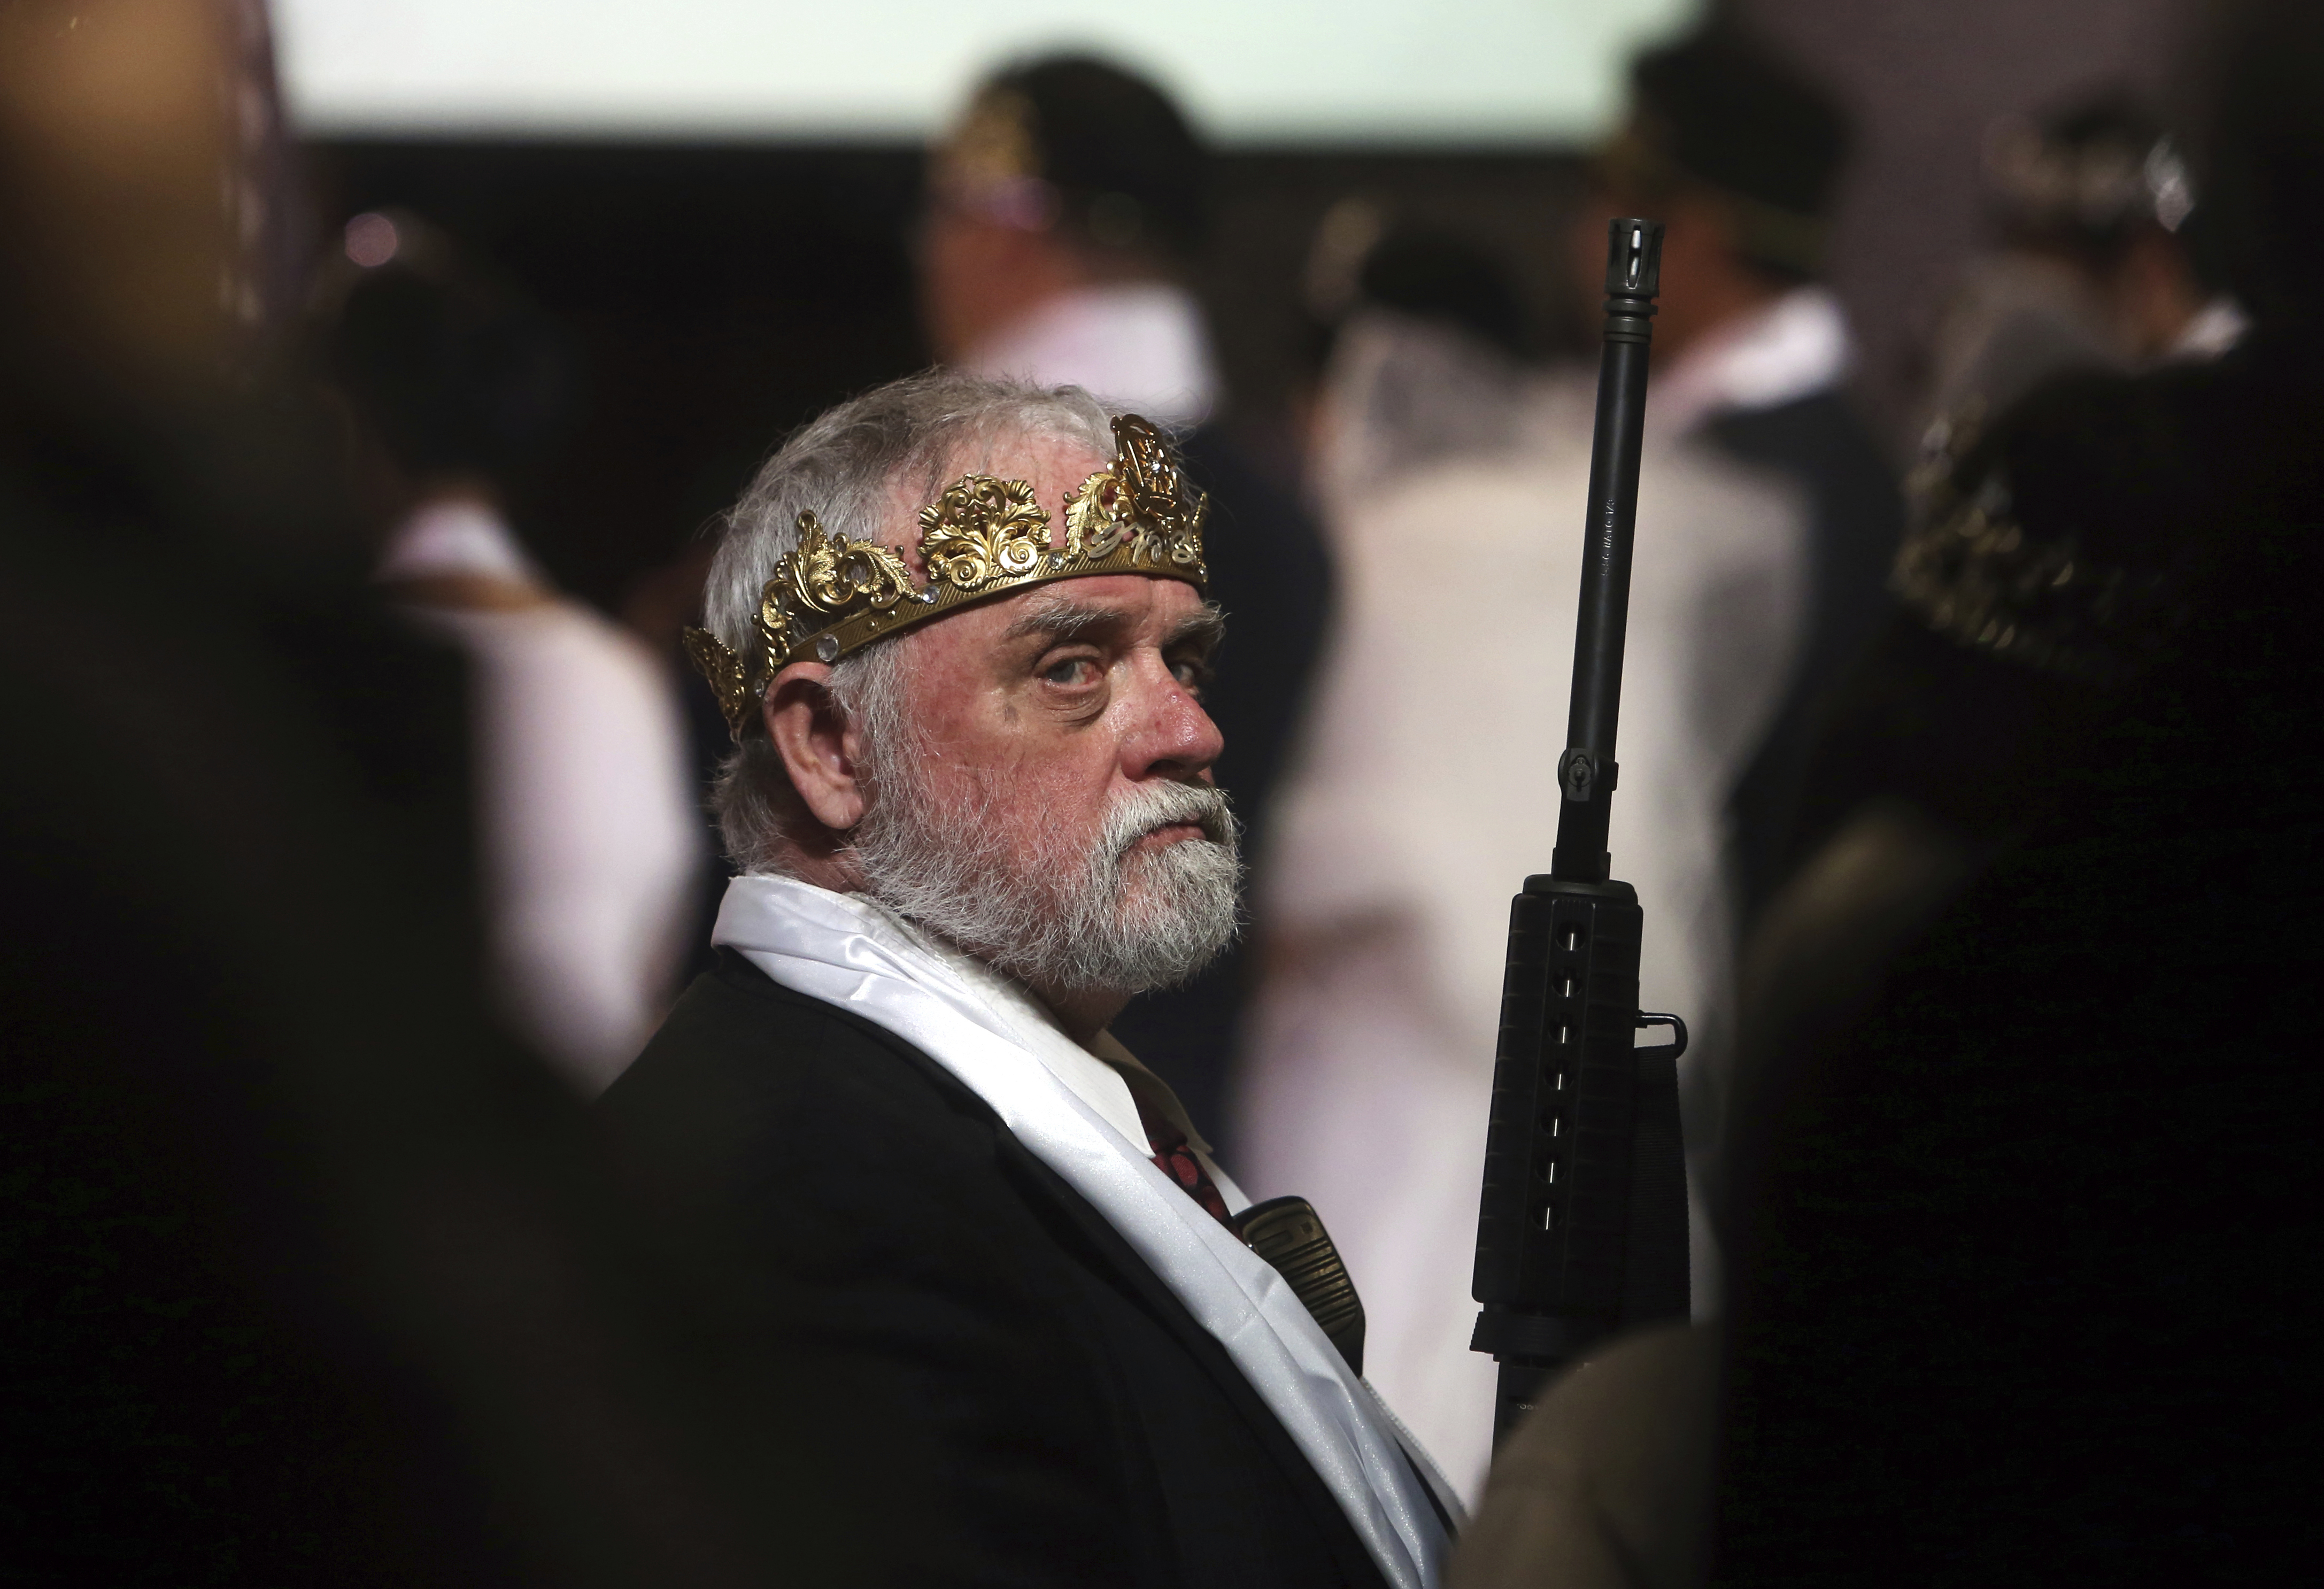 Man wears crown and holds rifle